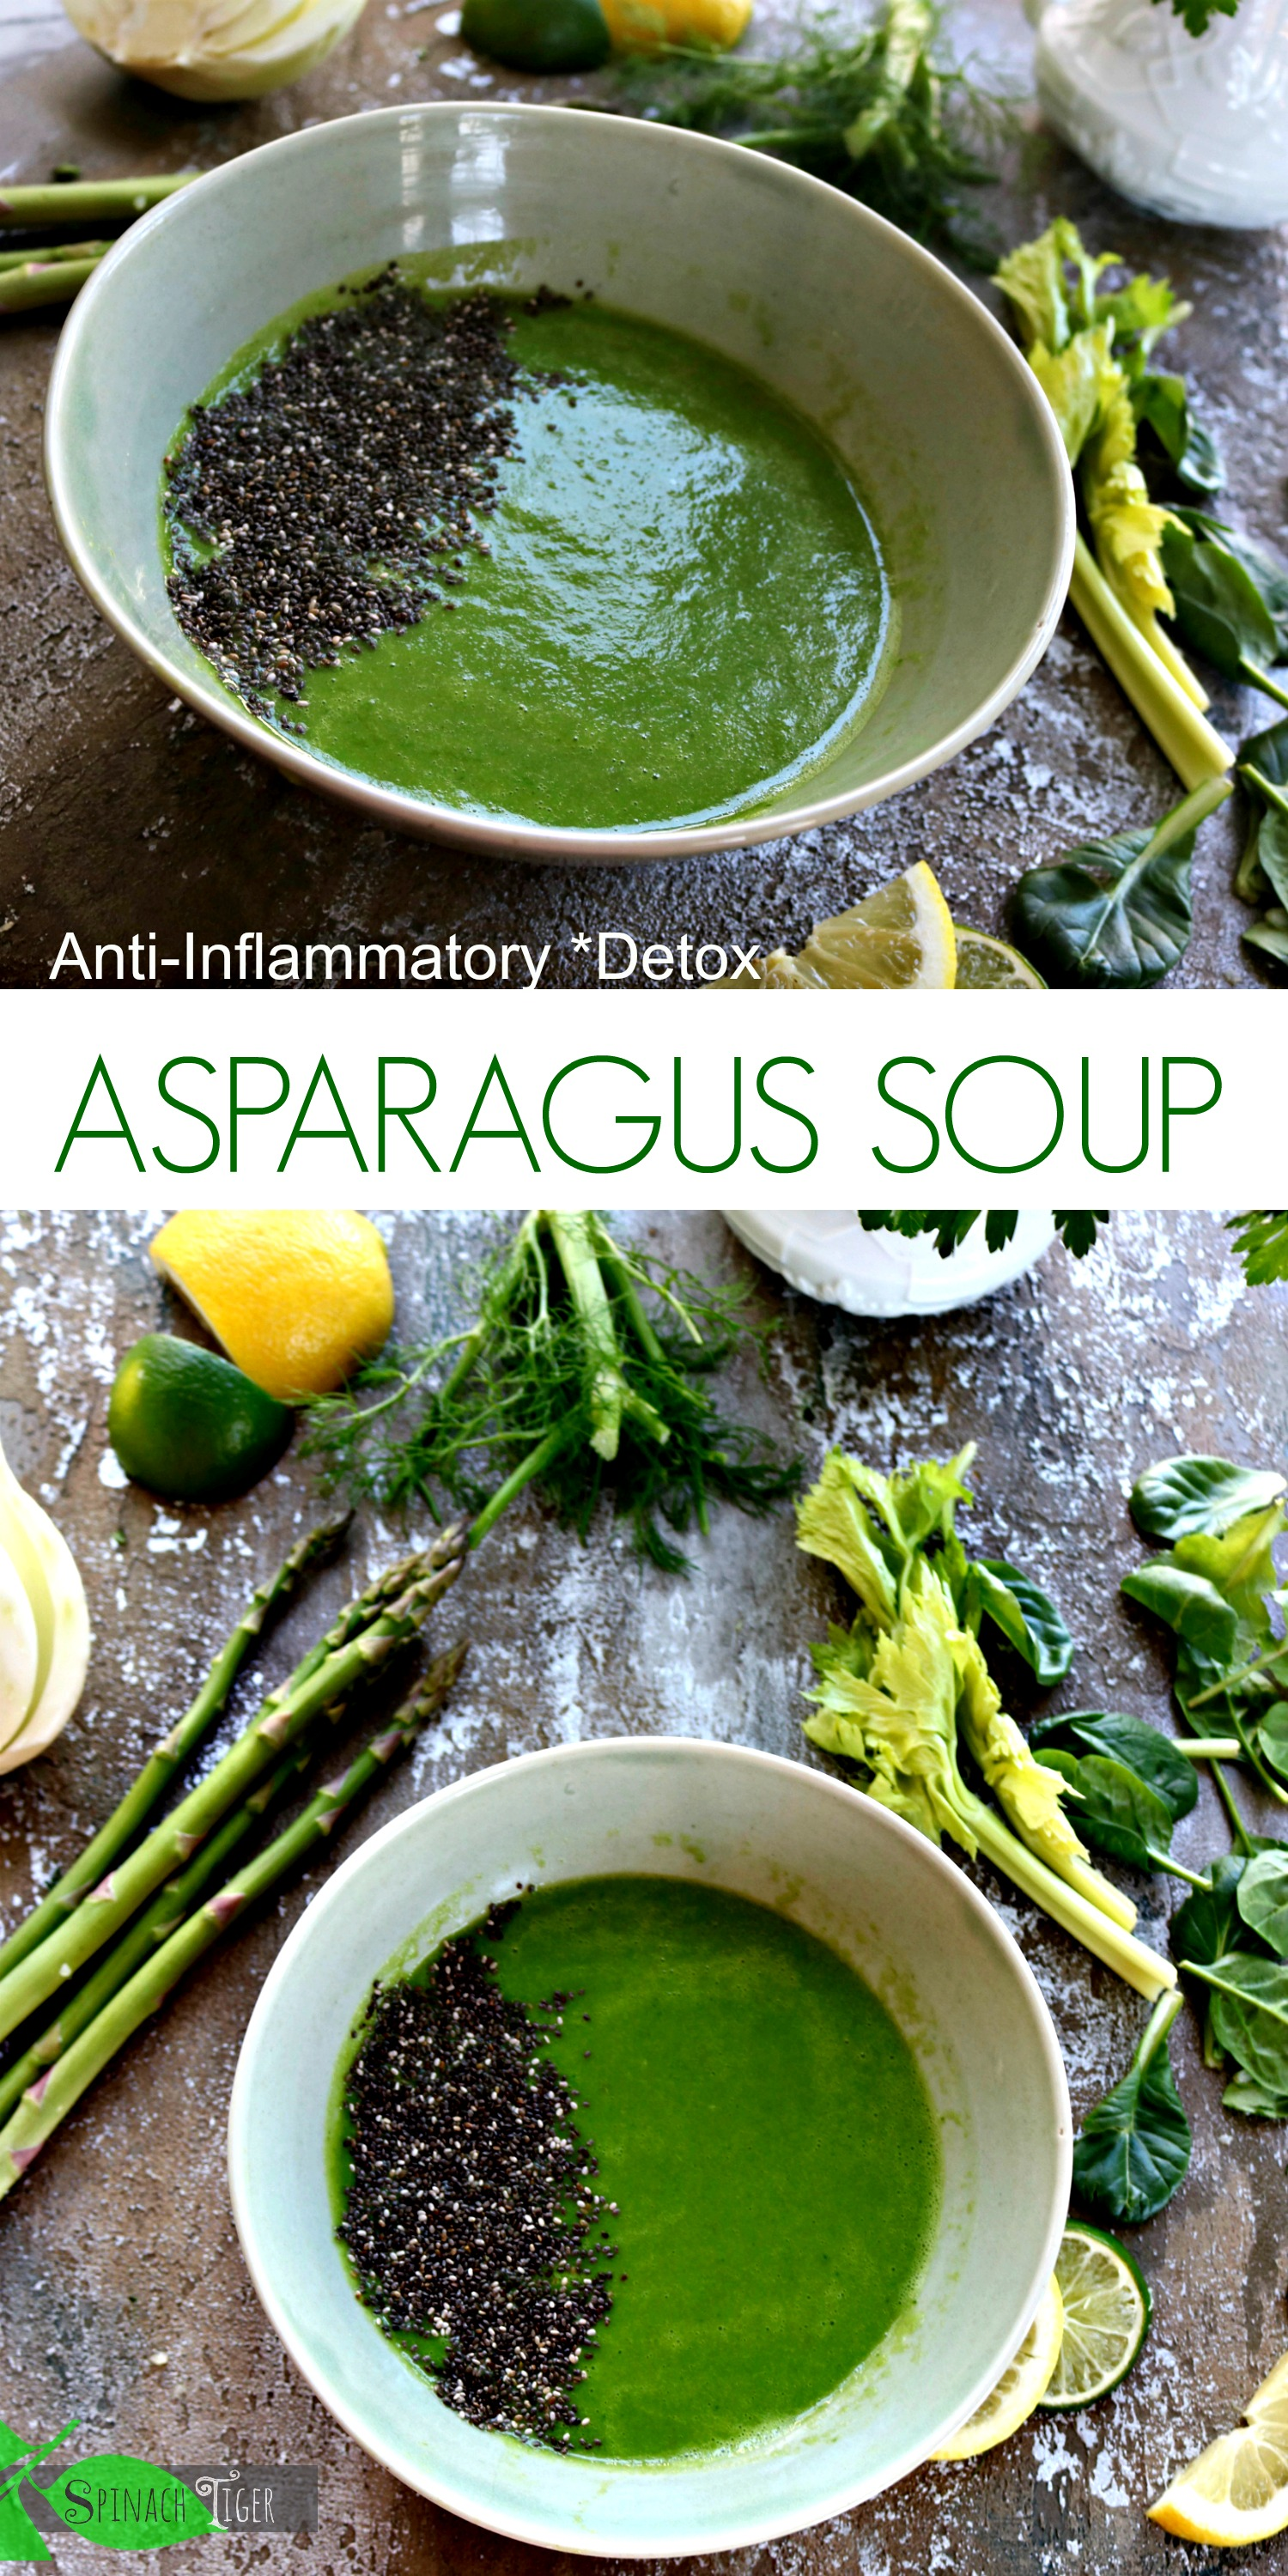 This Healthy Asparagus Soup Recipe is ant-inflammatory, Paleo, Vegan, and Easy from Spinach Tiger